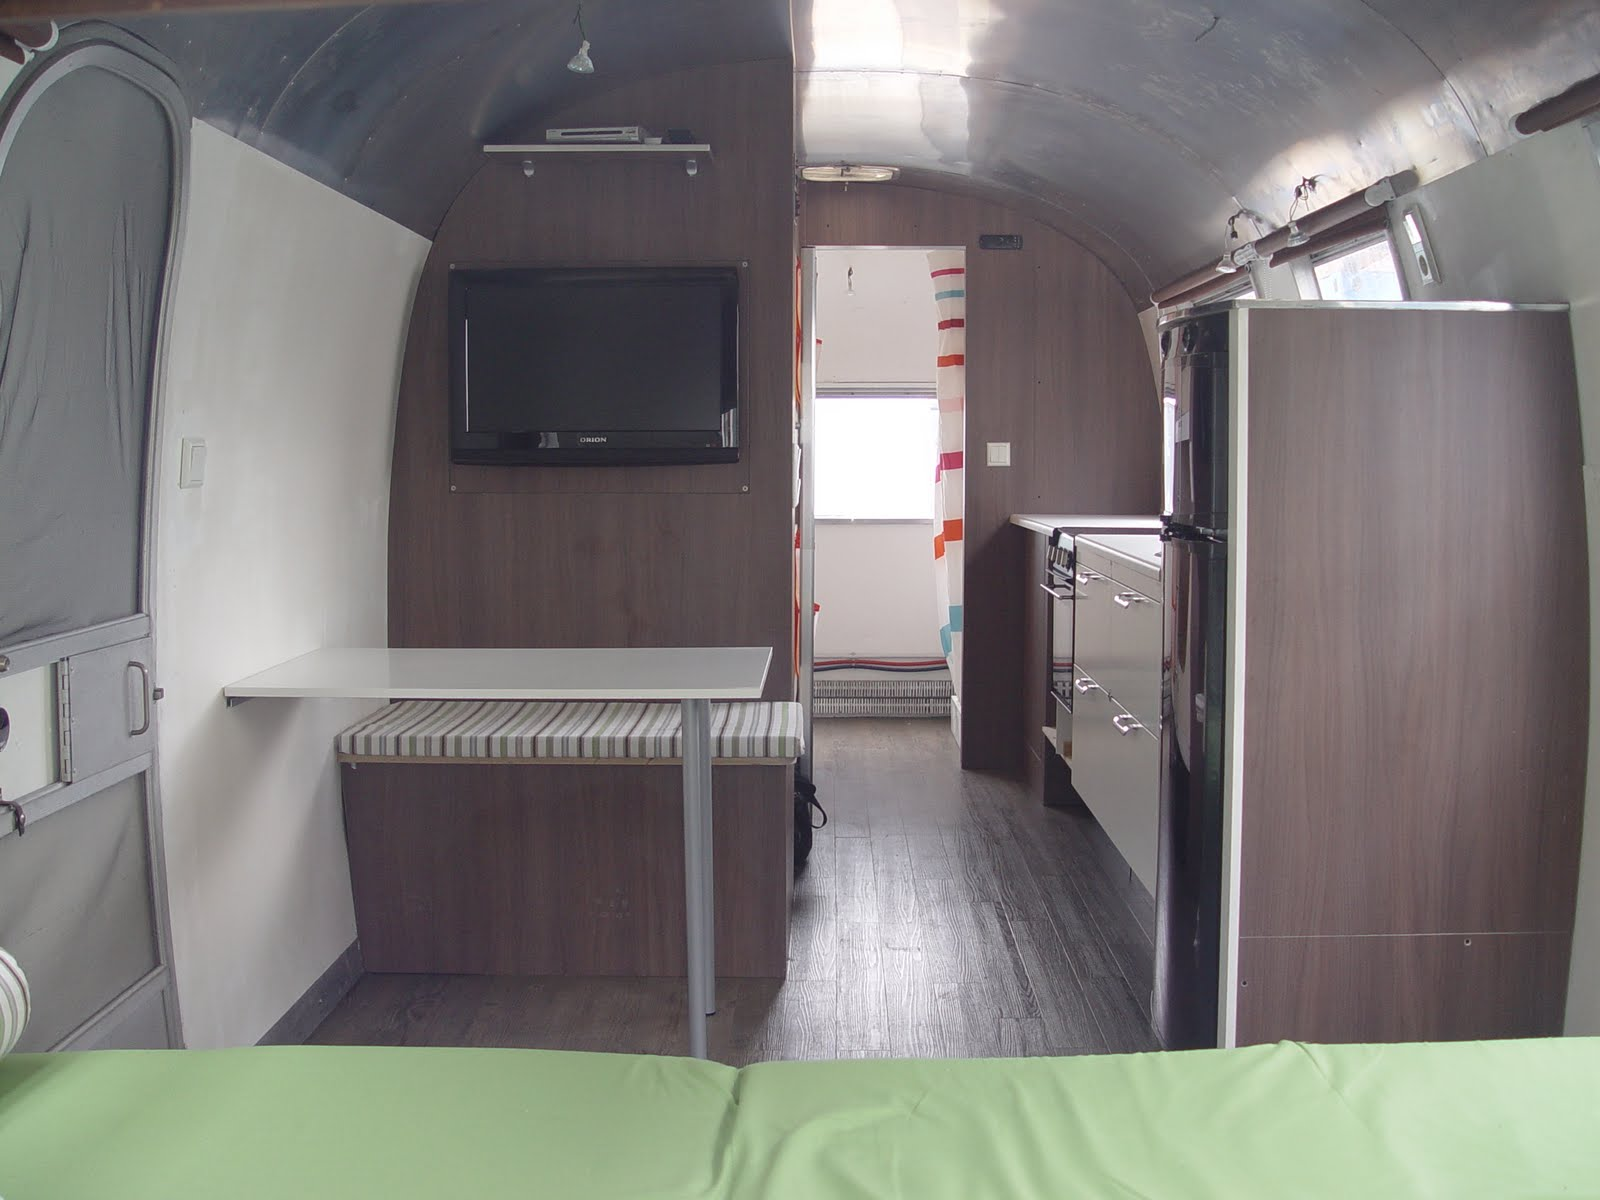 airstream renovieren seite 5 einbauberichte von zubeh r restaurierungen reparaturen. Black Bedroom Furniture Sets. Home Design Ideas